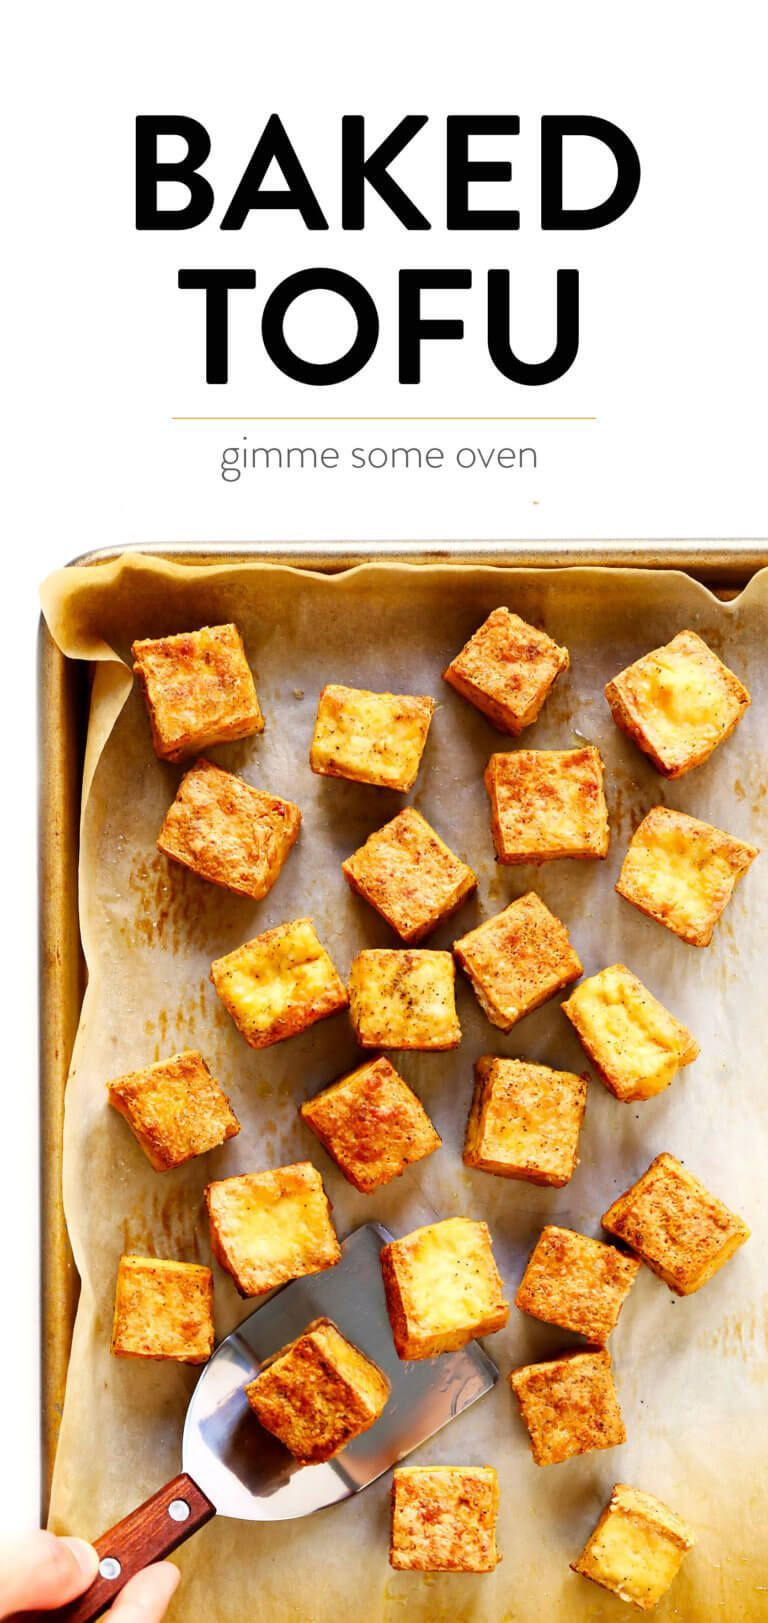 How To Make Baked Tofu | Gimme Some Oven #quickandeasydinnerrecipes